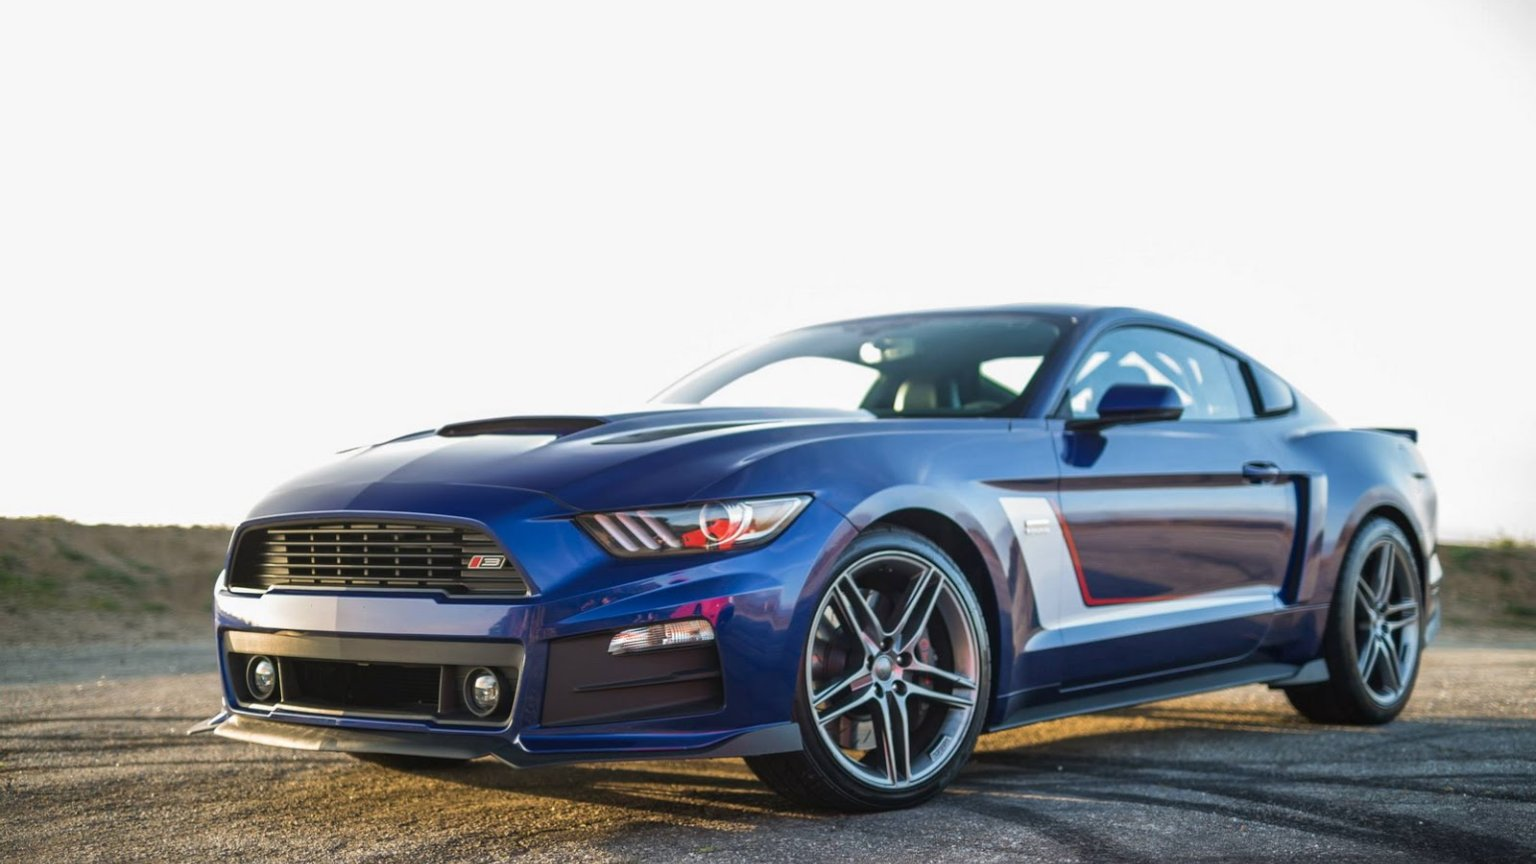 ford mustang 2015 roush stage 3 prawdziwy rumak. Black Bedroom Furniture Sets. Home Design Ideas